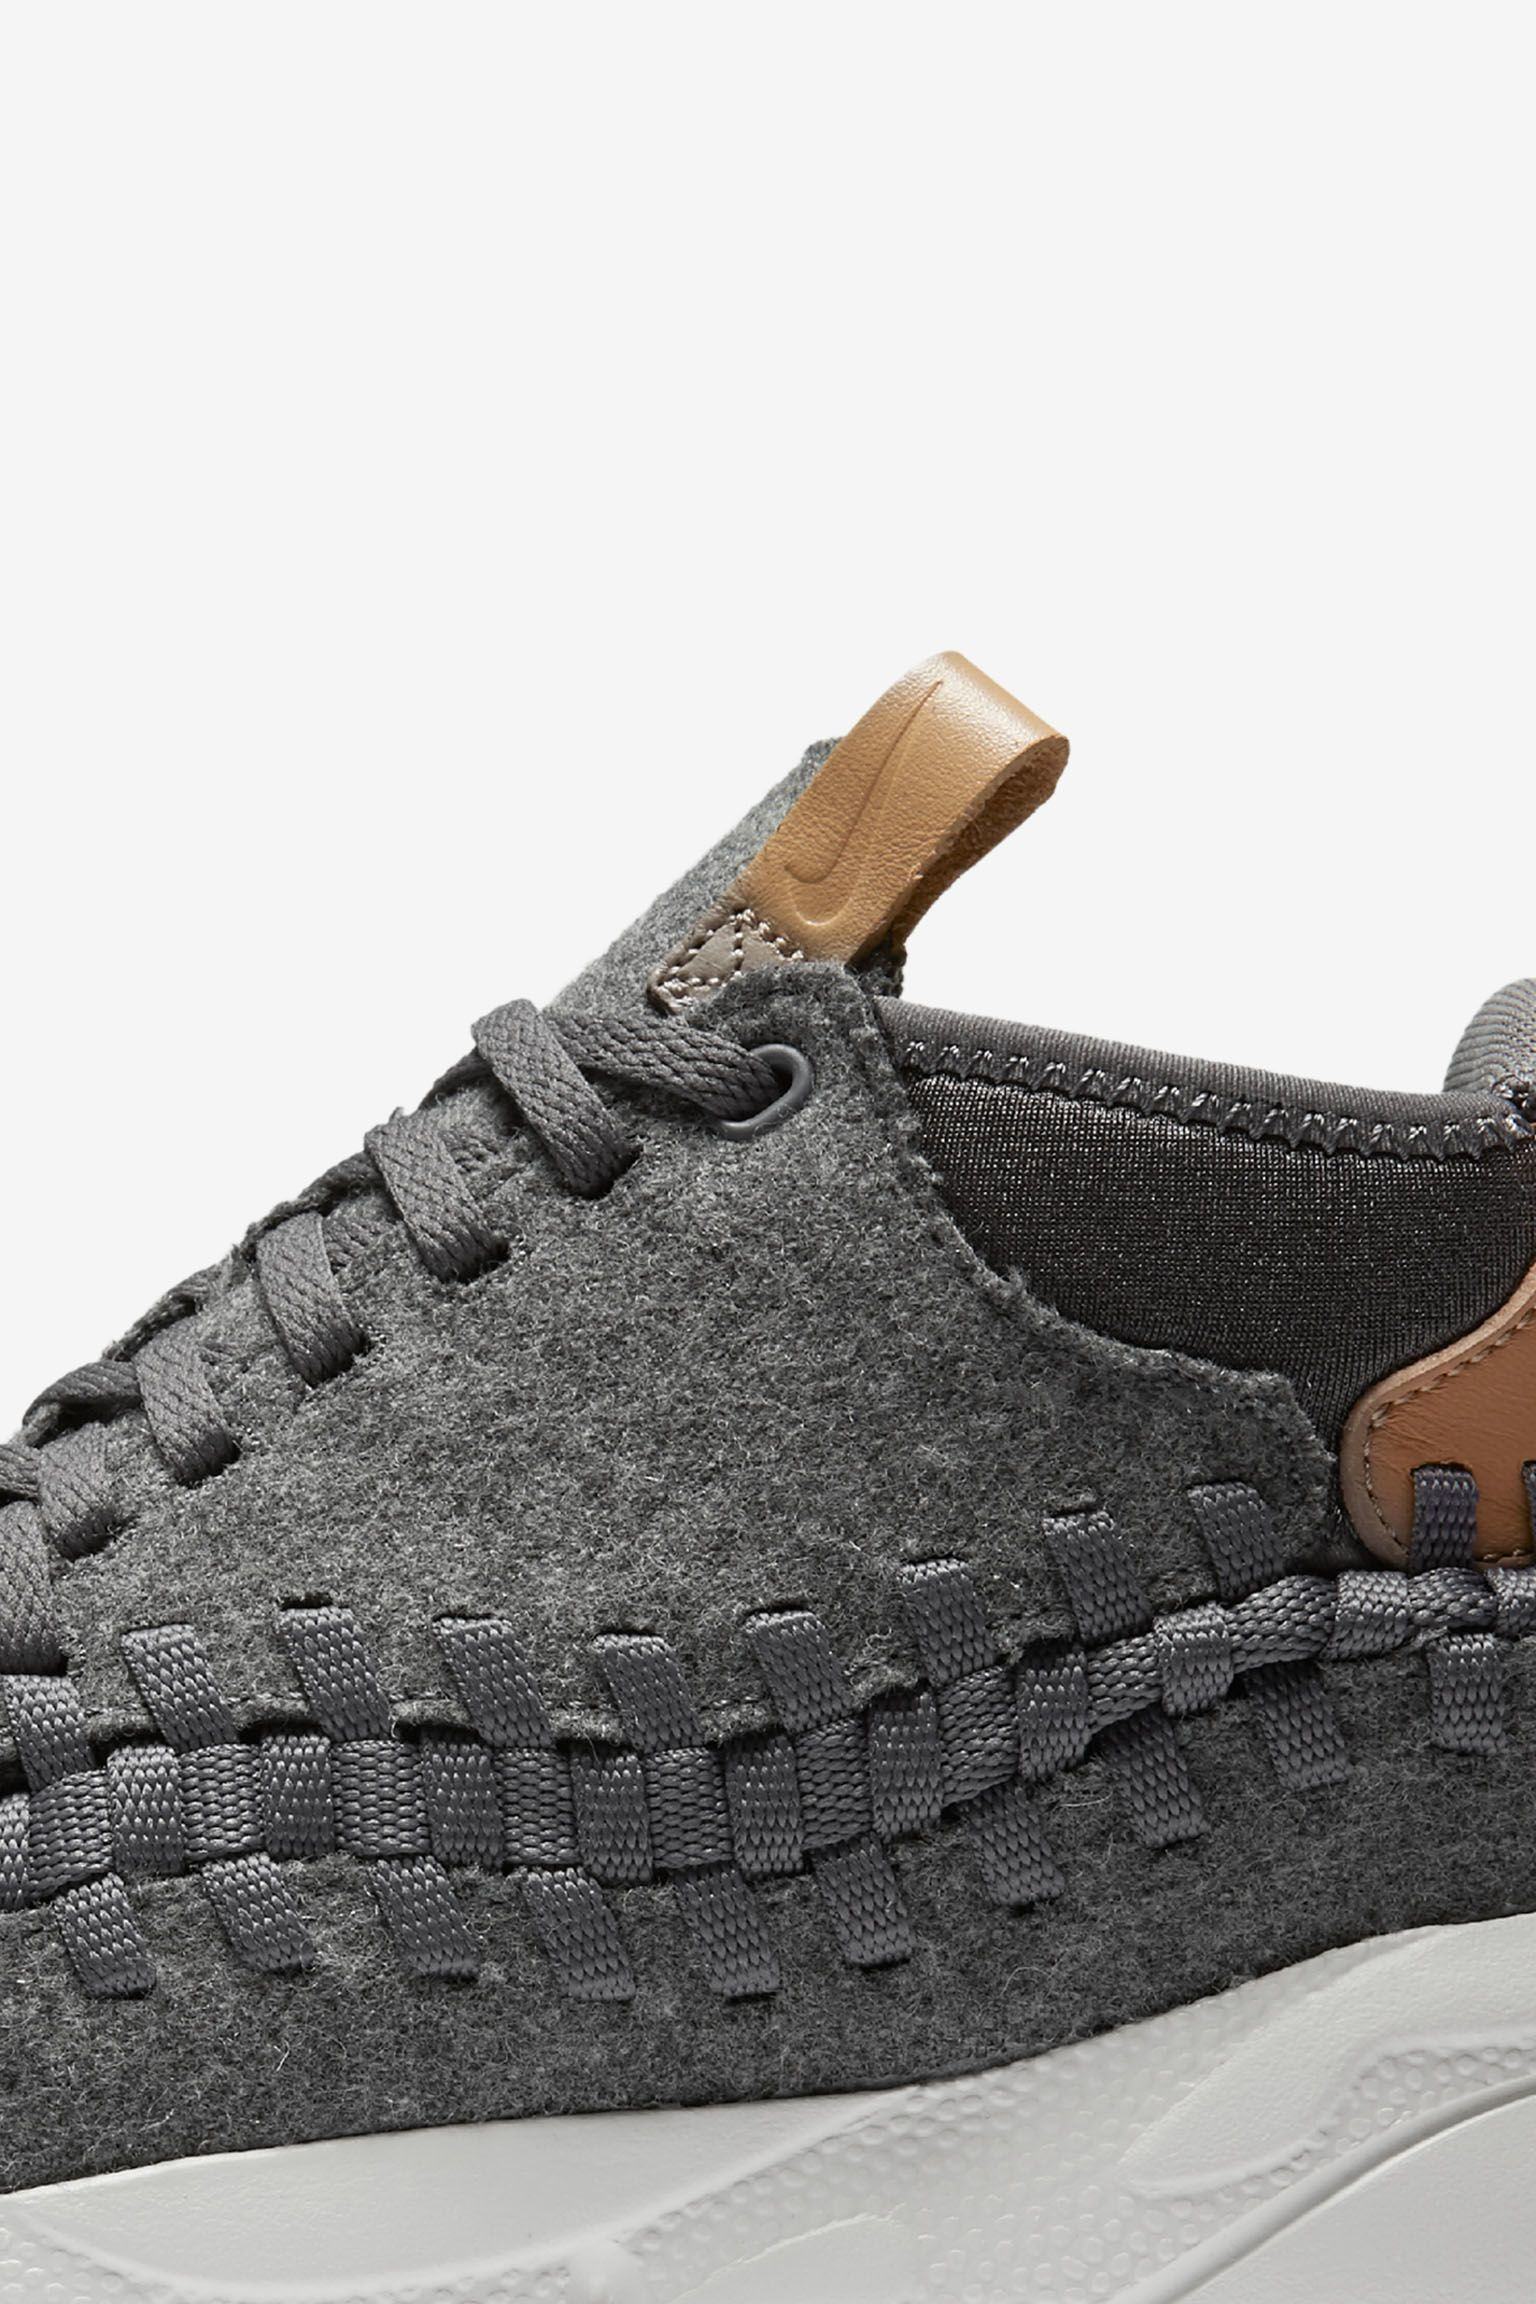 Nike Air Footscape Woven Chukka SE 'Dark Grey'. Release Date